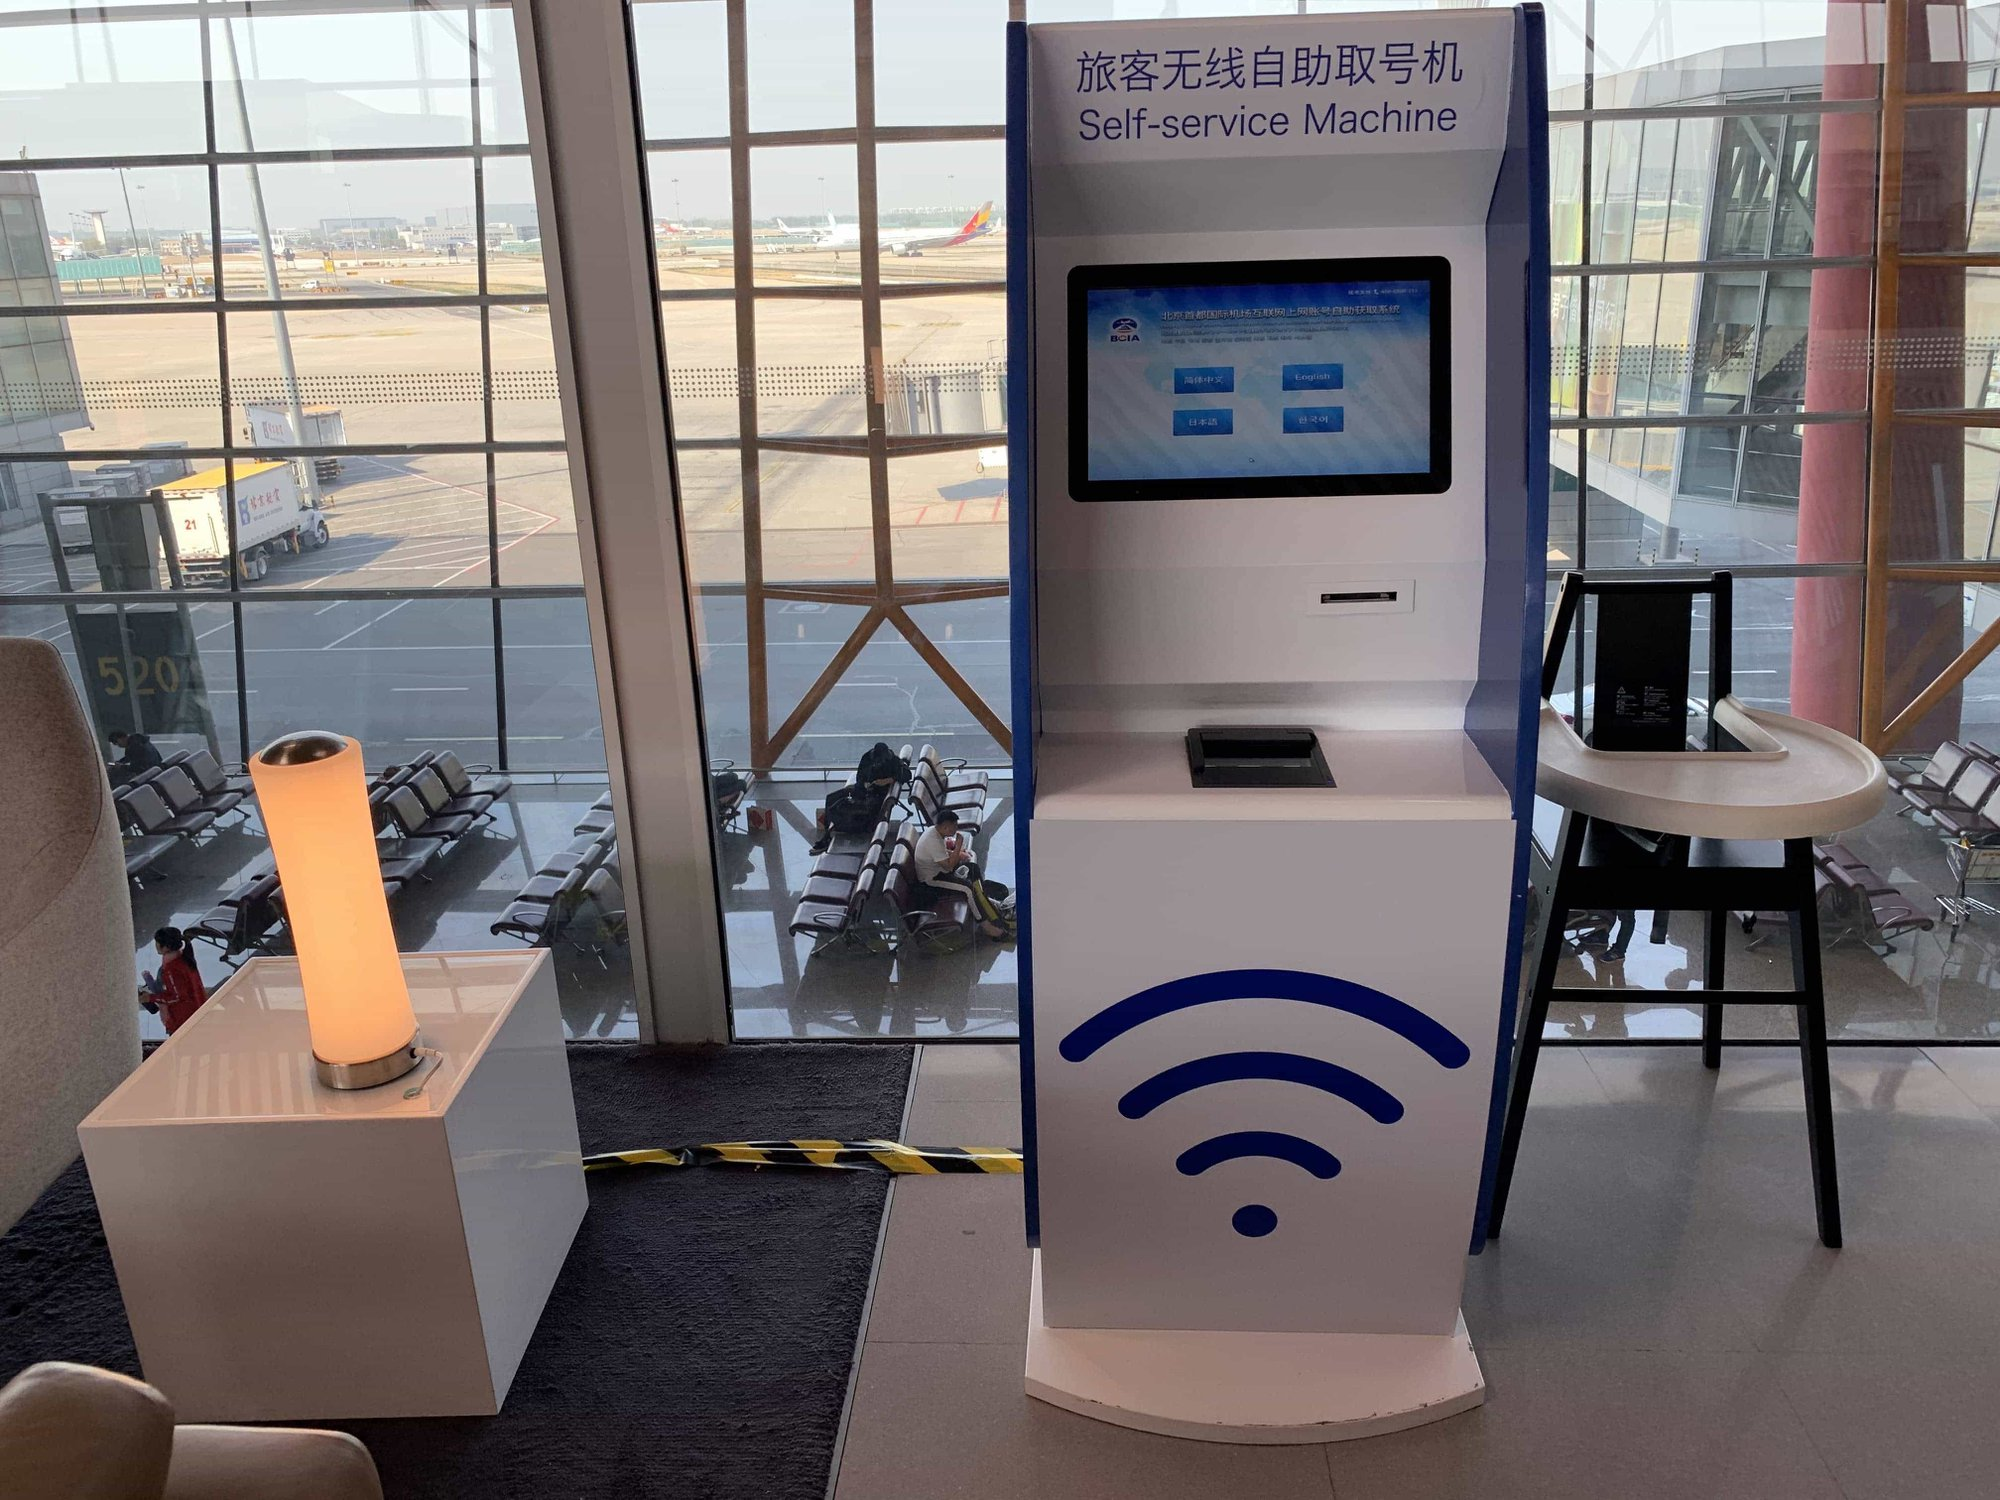 China wants proof of identity to access airport WiFi in Beijing